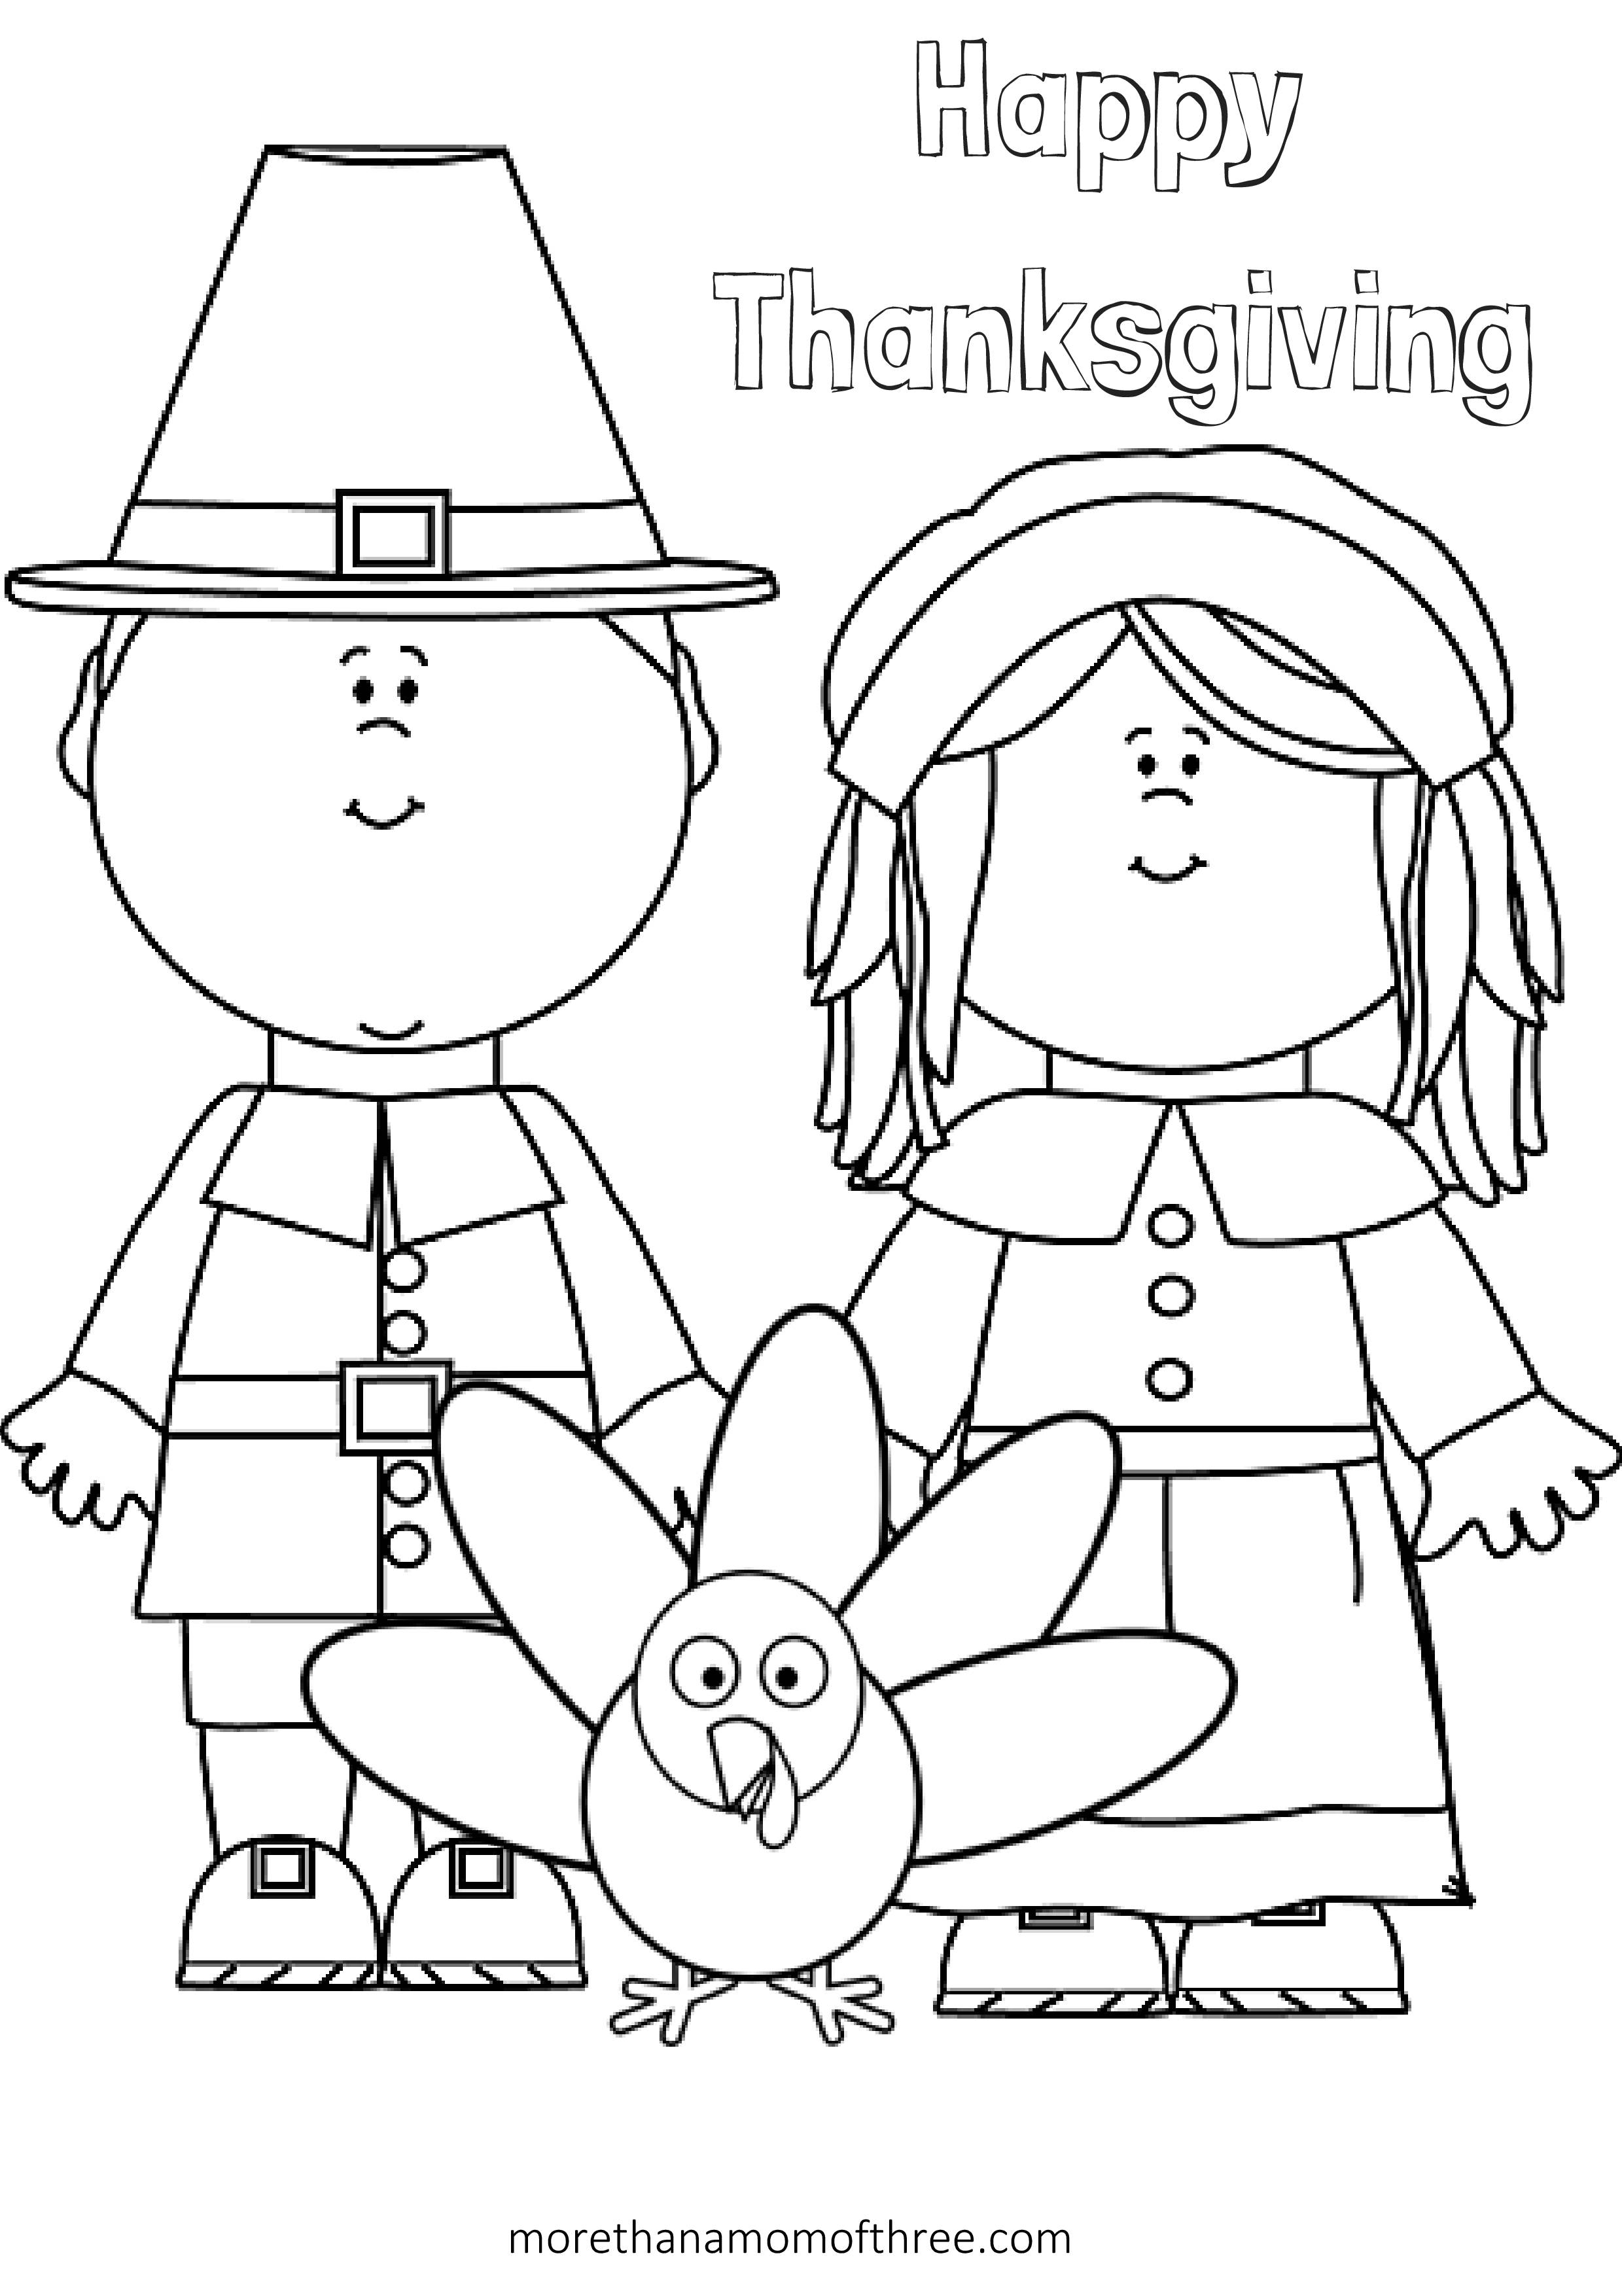 Printable Religious Thanksgiving Coloring Pages - Coloring ...